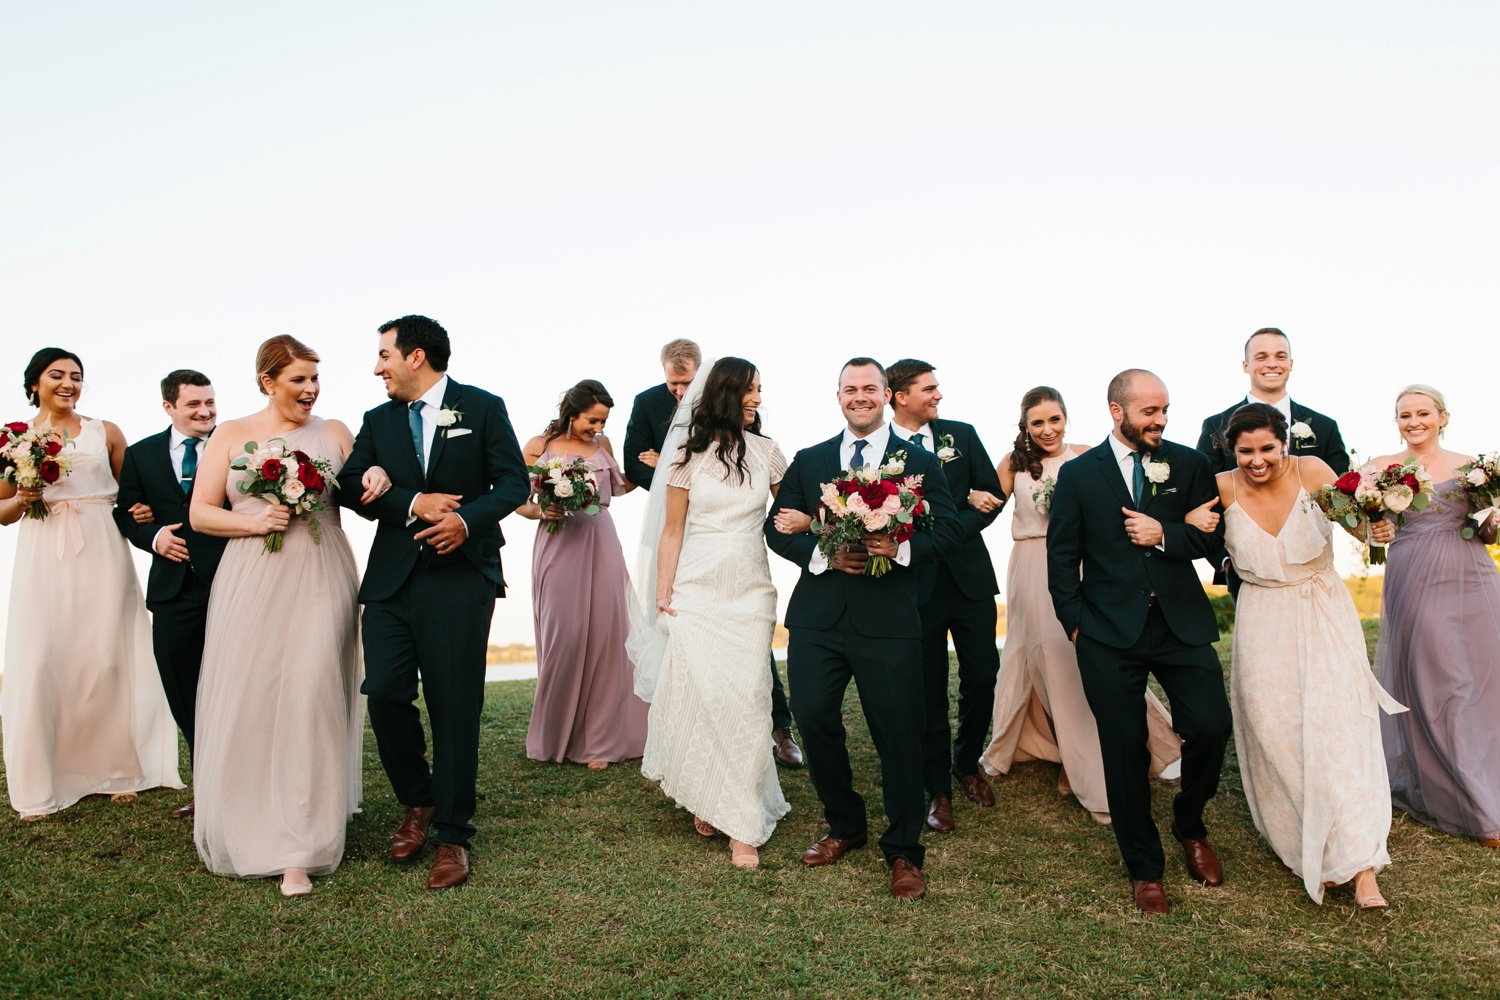 Kadee + Tyler | a raw, emotional wedding at the Filter Building on White Rock Lake in Dallas, TX by North Texas Wedding Photographer, Rachel Meagan Photography 158